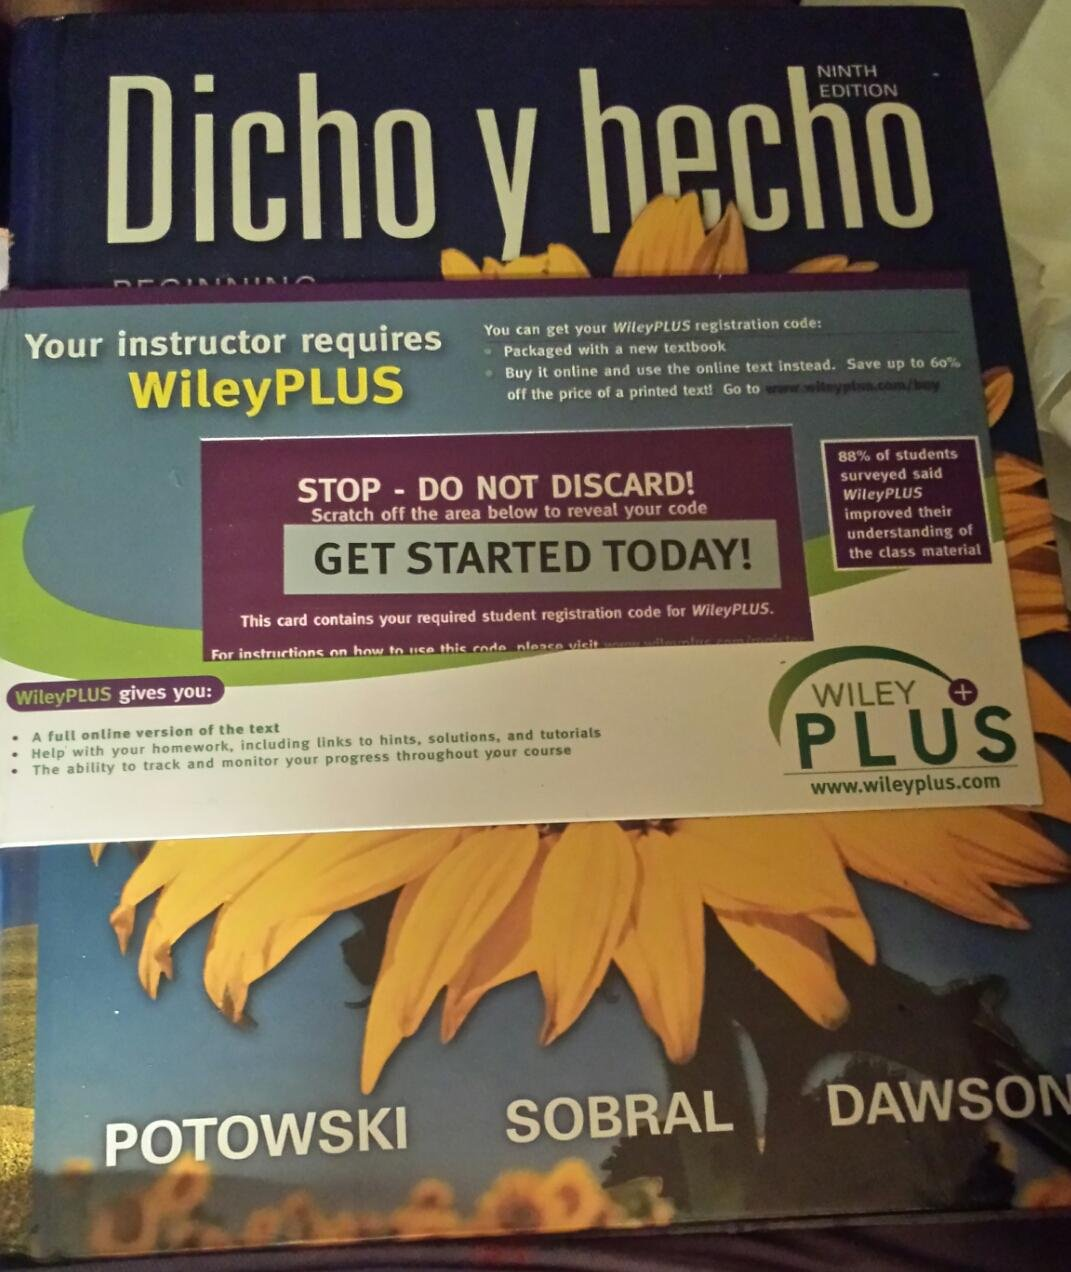 Dicho Y Hecho with Wileyplus Ninth Edition with Electronic Student Activities  Manual: Potowski, Sobral, Dawson: 9781118099636: Amazon.com: Books